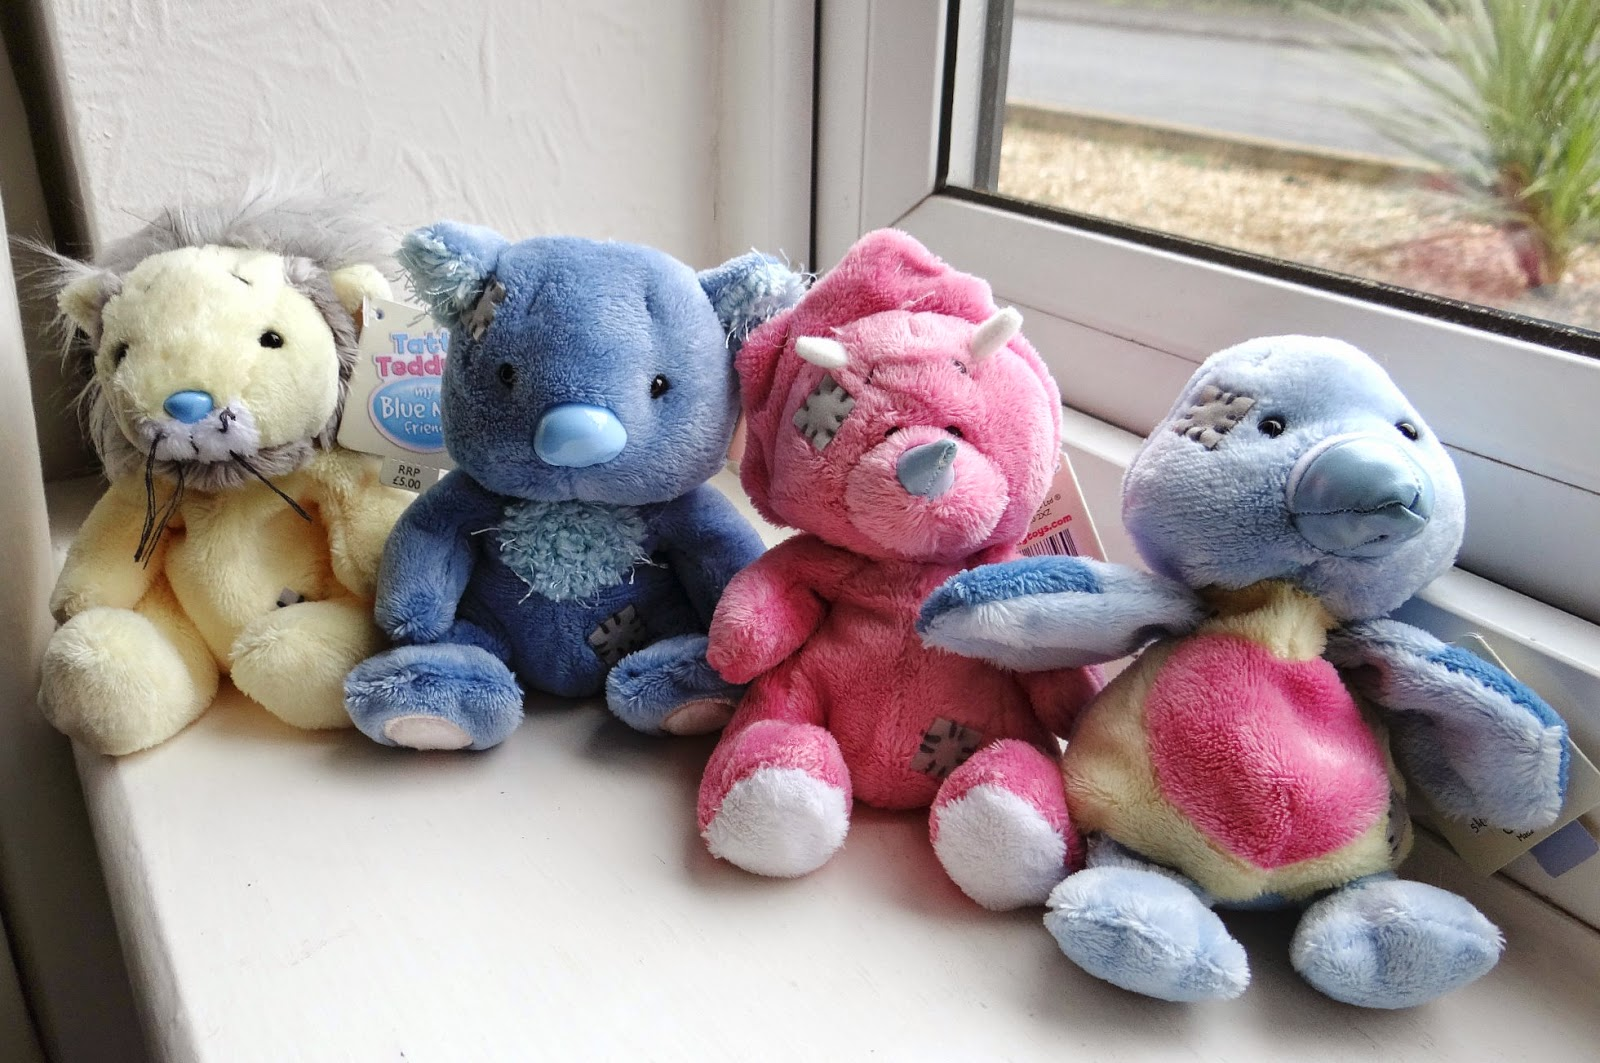 Tatty Teddy Blue Nose Friends soft toys, Tatty Teddy beanies, blue nose friends plush